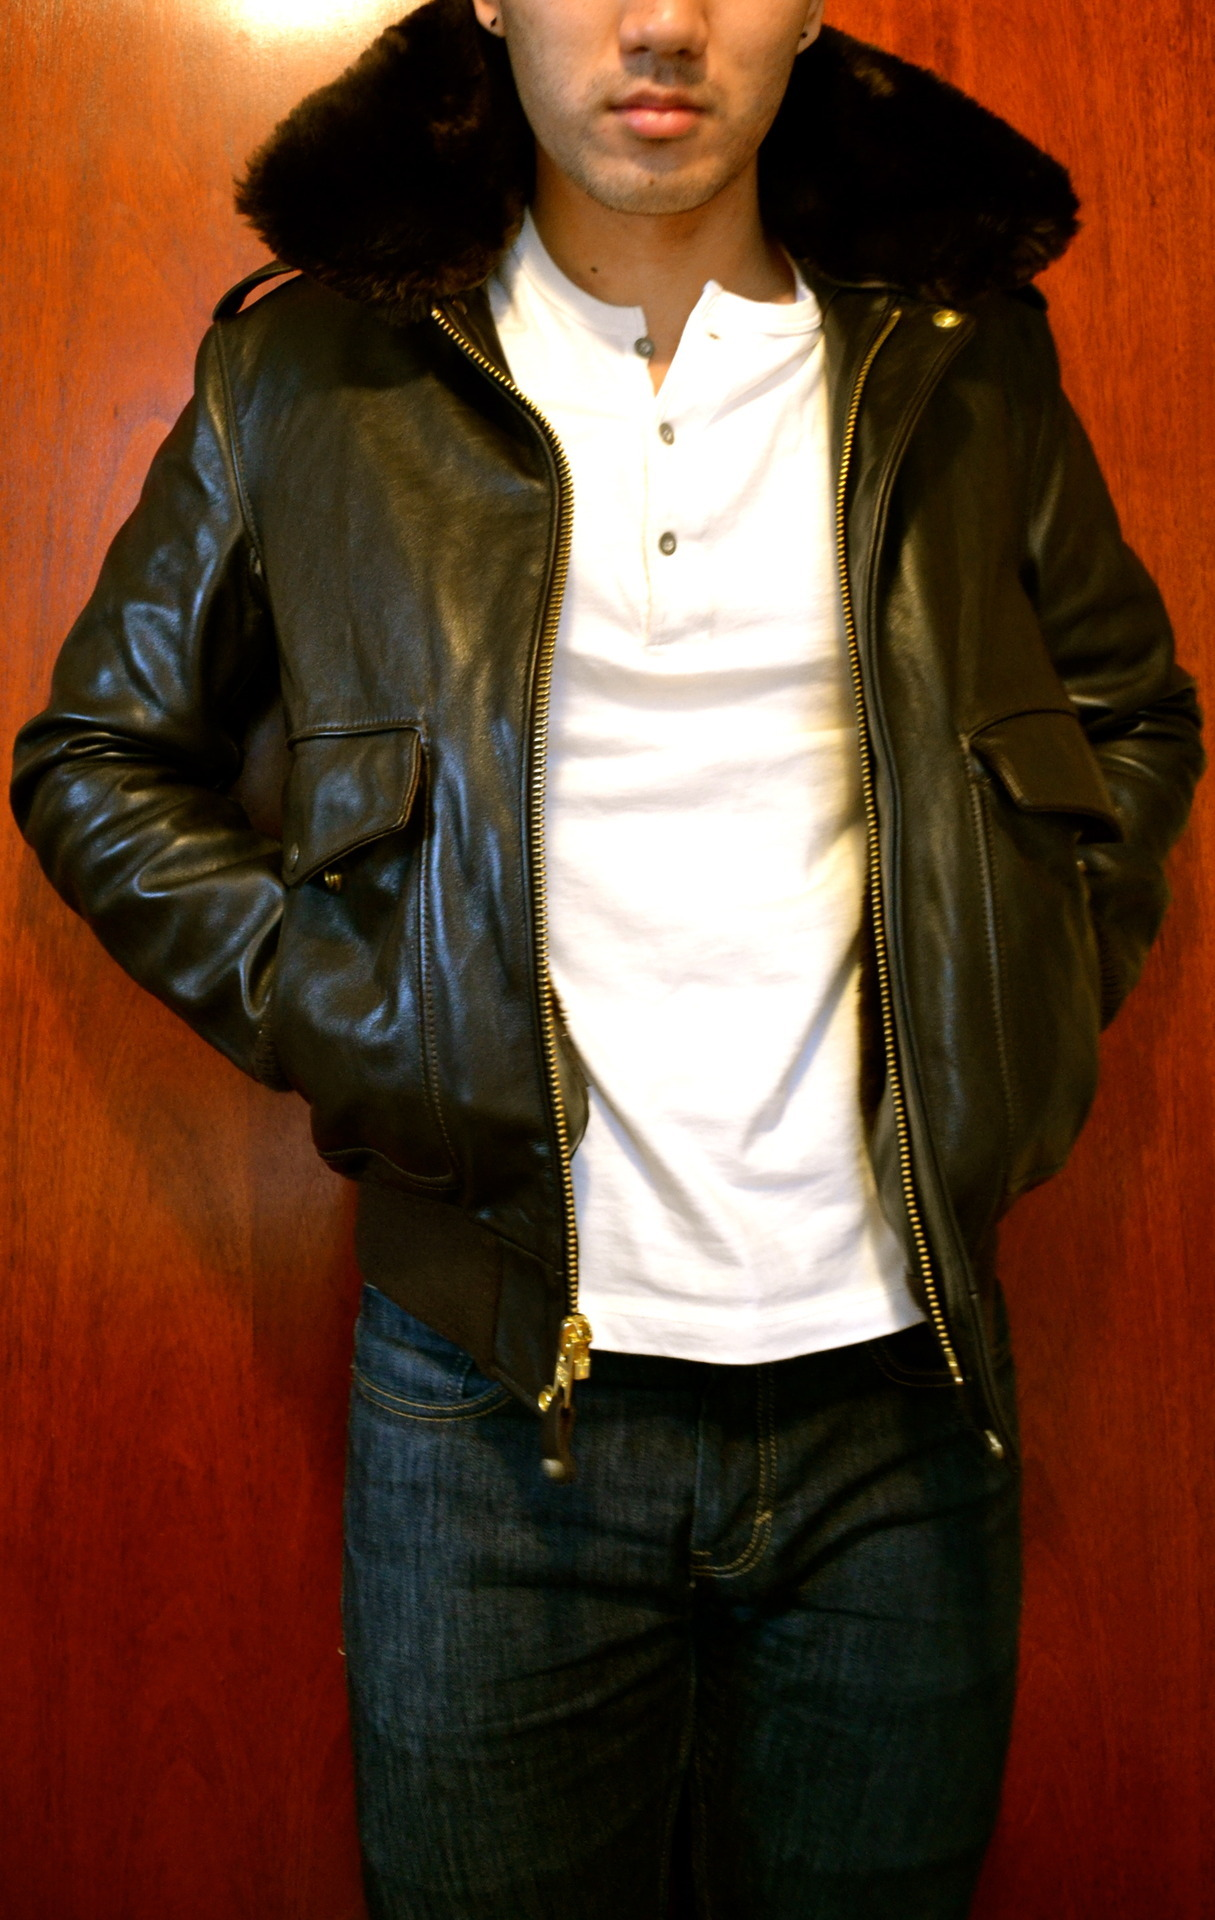 Take Flight Jacket by Schott NYC Henley by J. Crew Denim by Levi's